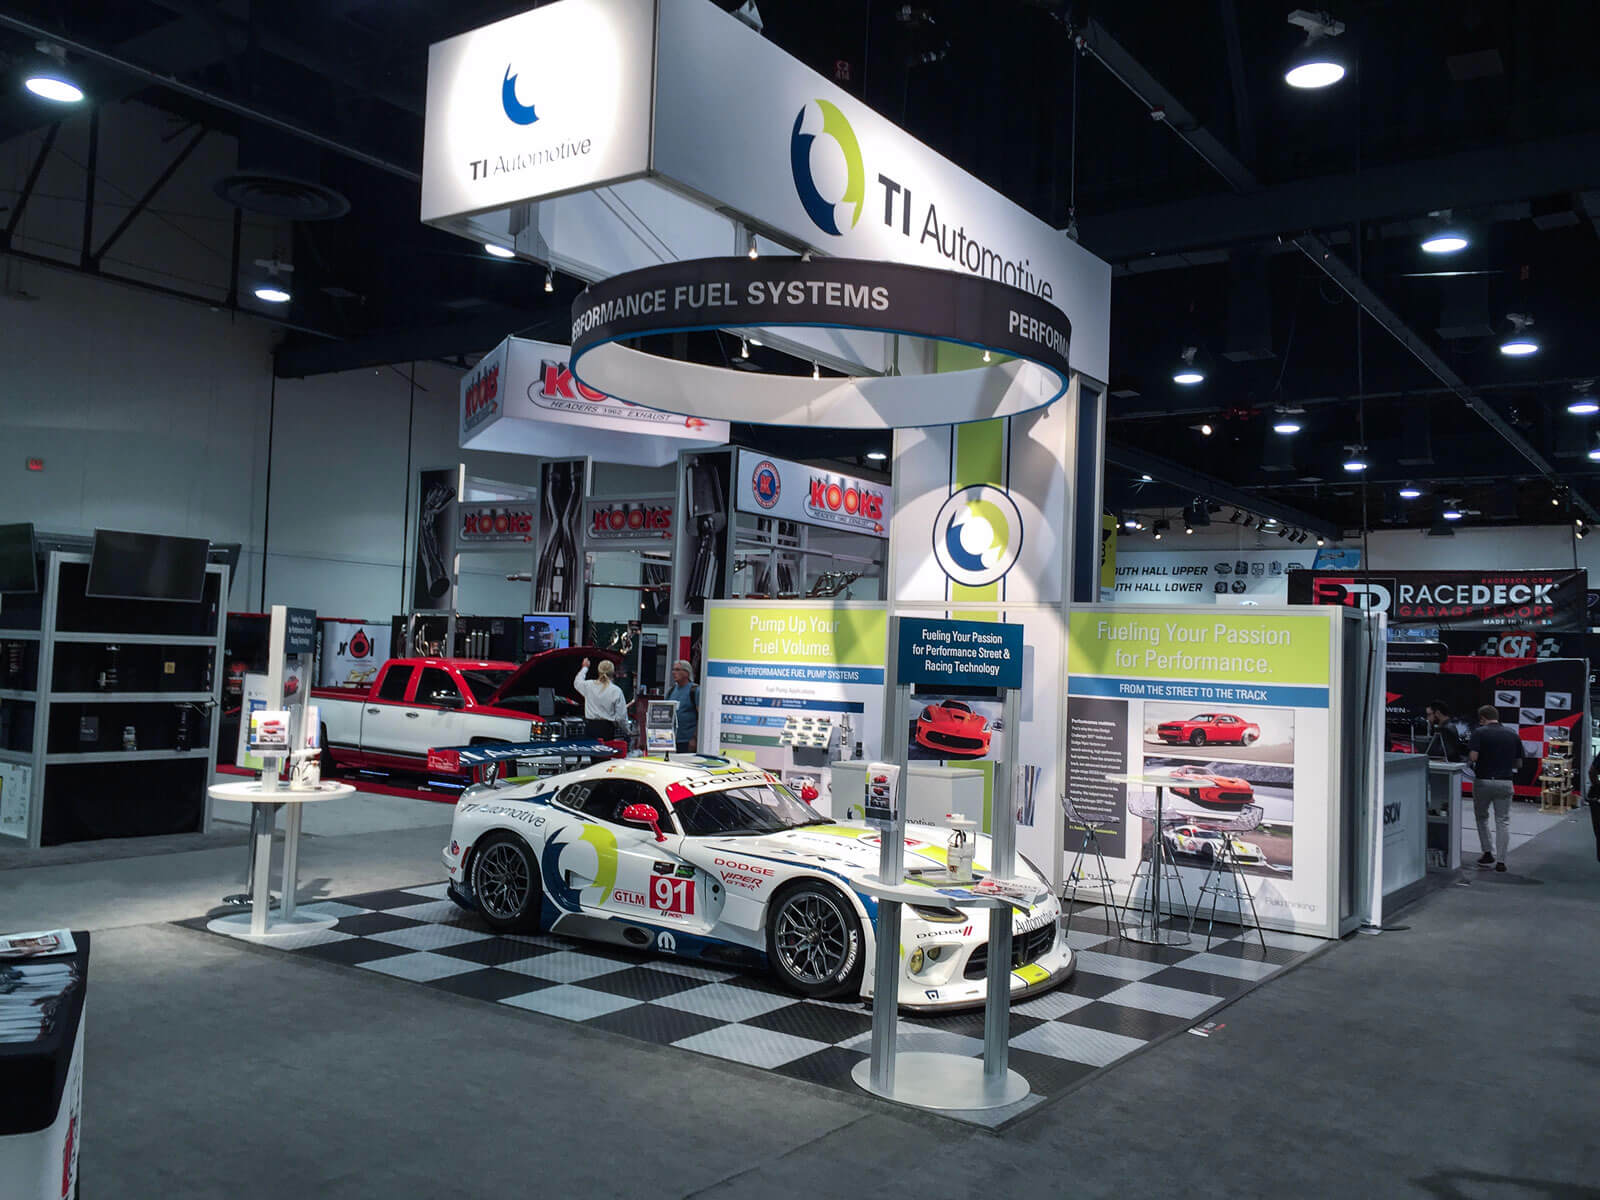 TI Automotive display